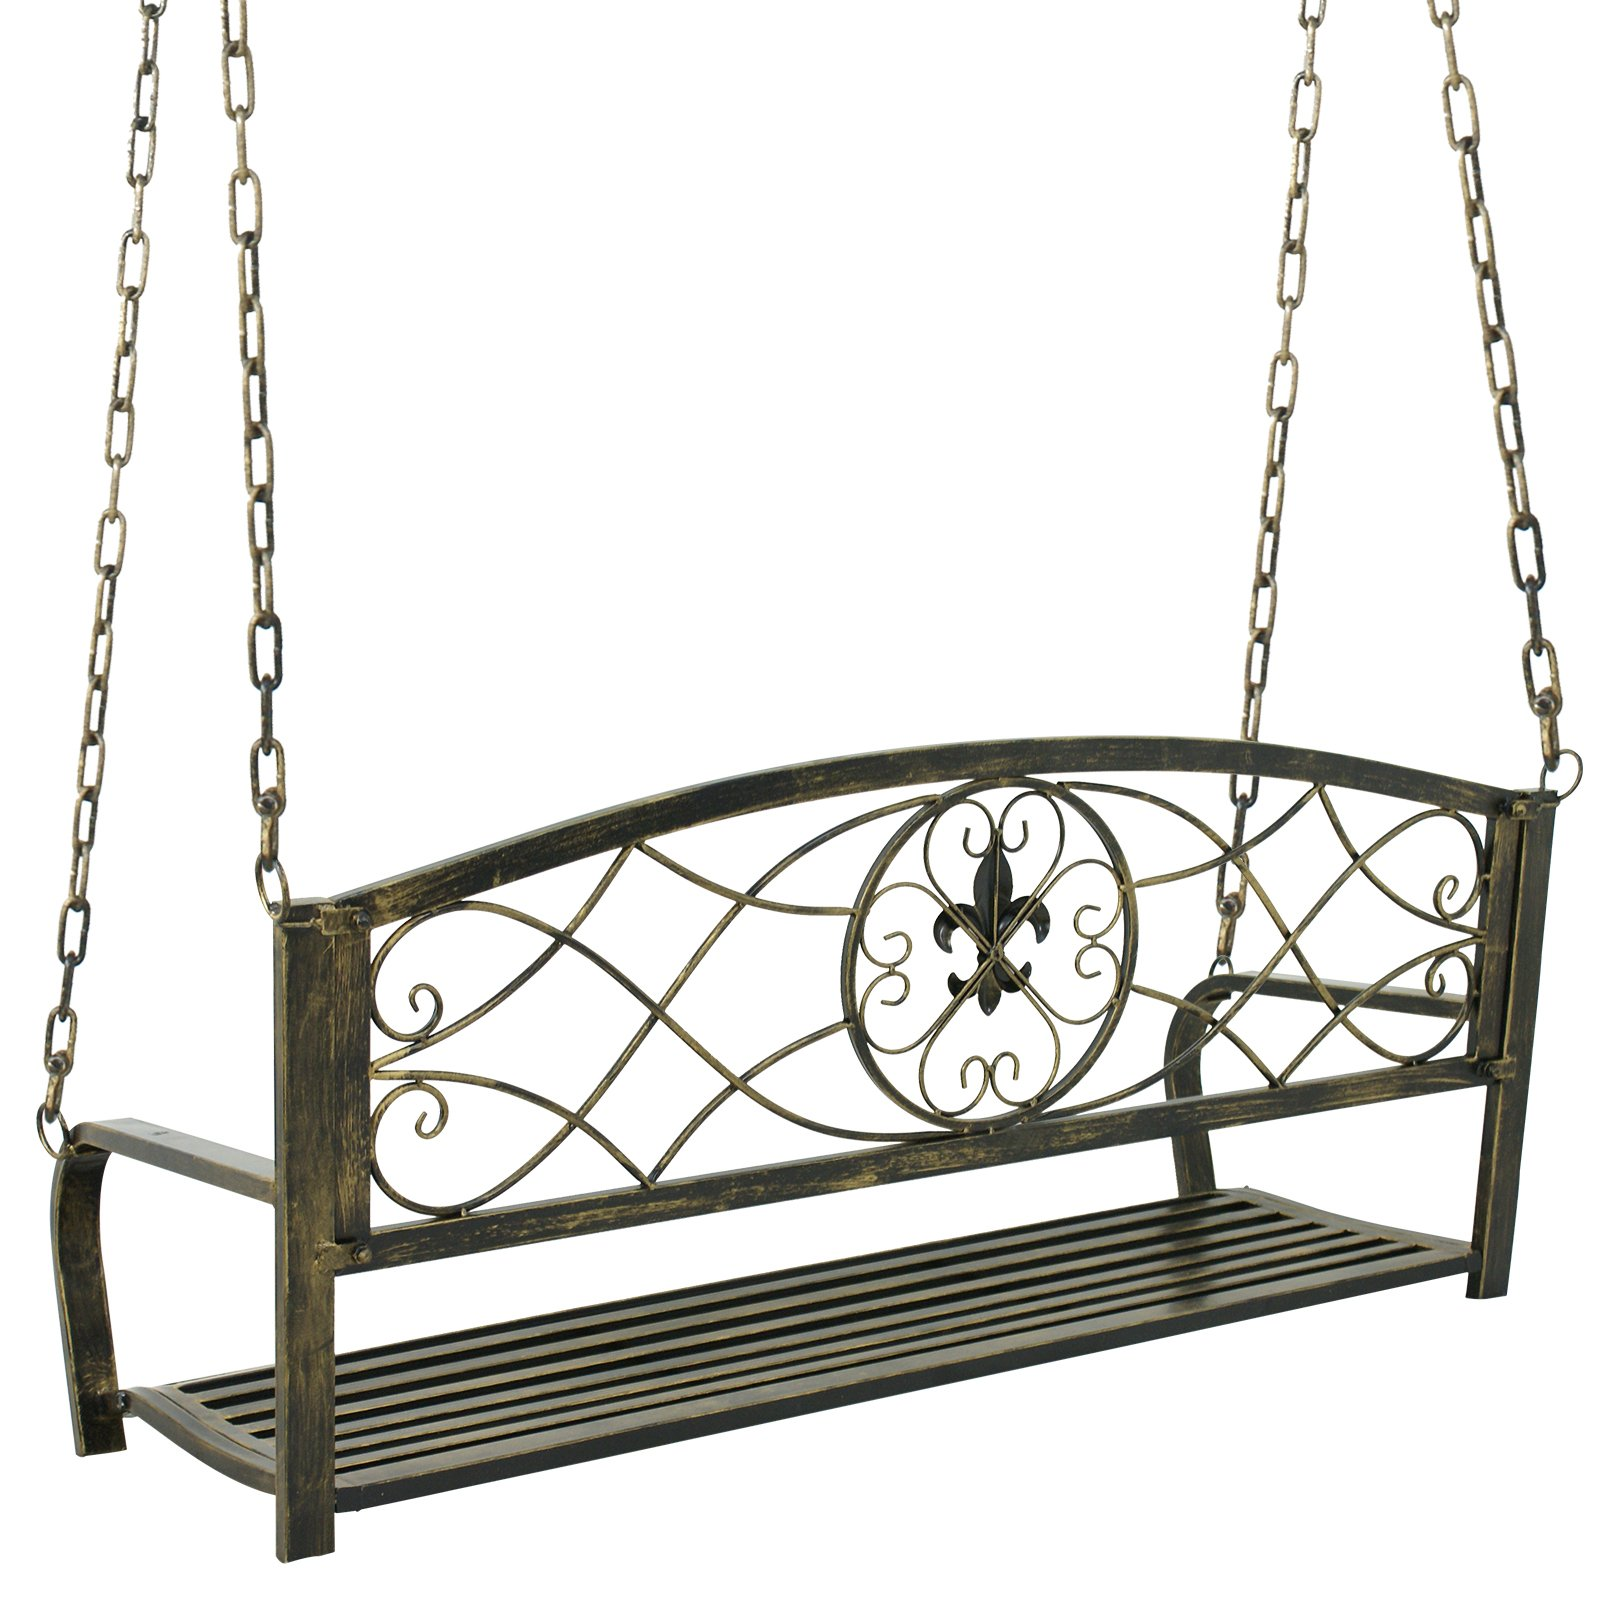 Smartxchoices Treated Metal Hanging Patio Swing Bench Porch Furniture Fleur-De-Lis Design 2 Person Heavy Duty Swing Chair 50.5''L by Smartxchoices (Image #2)